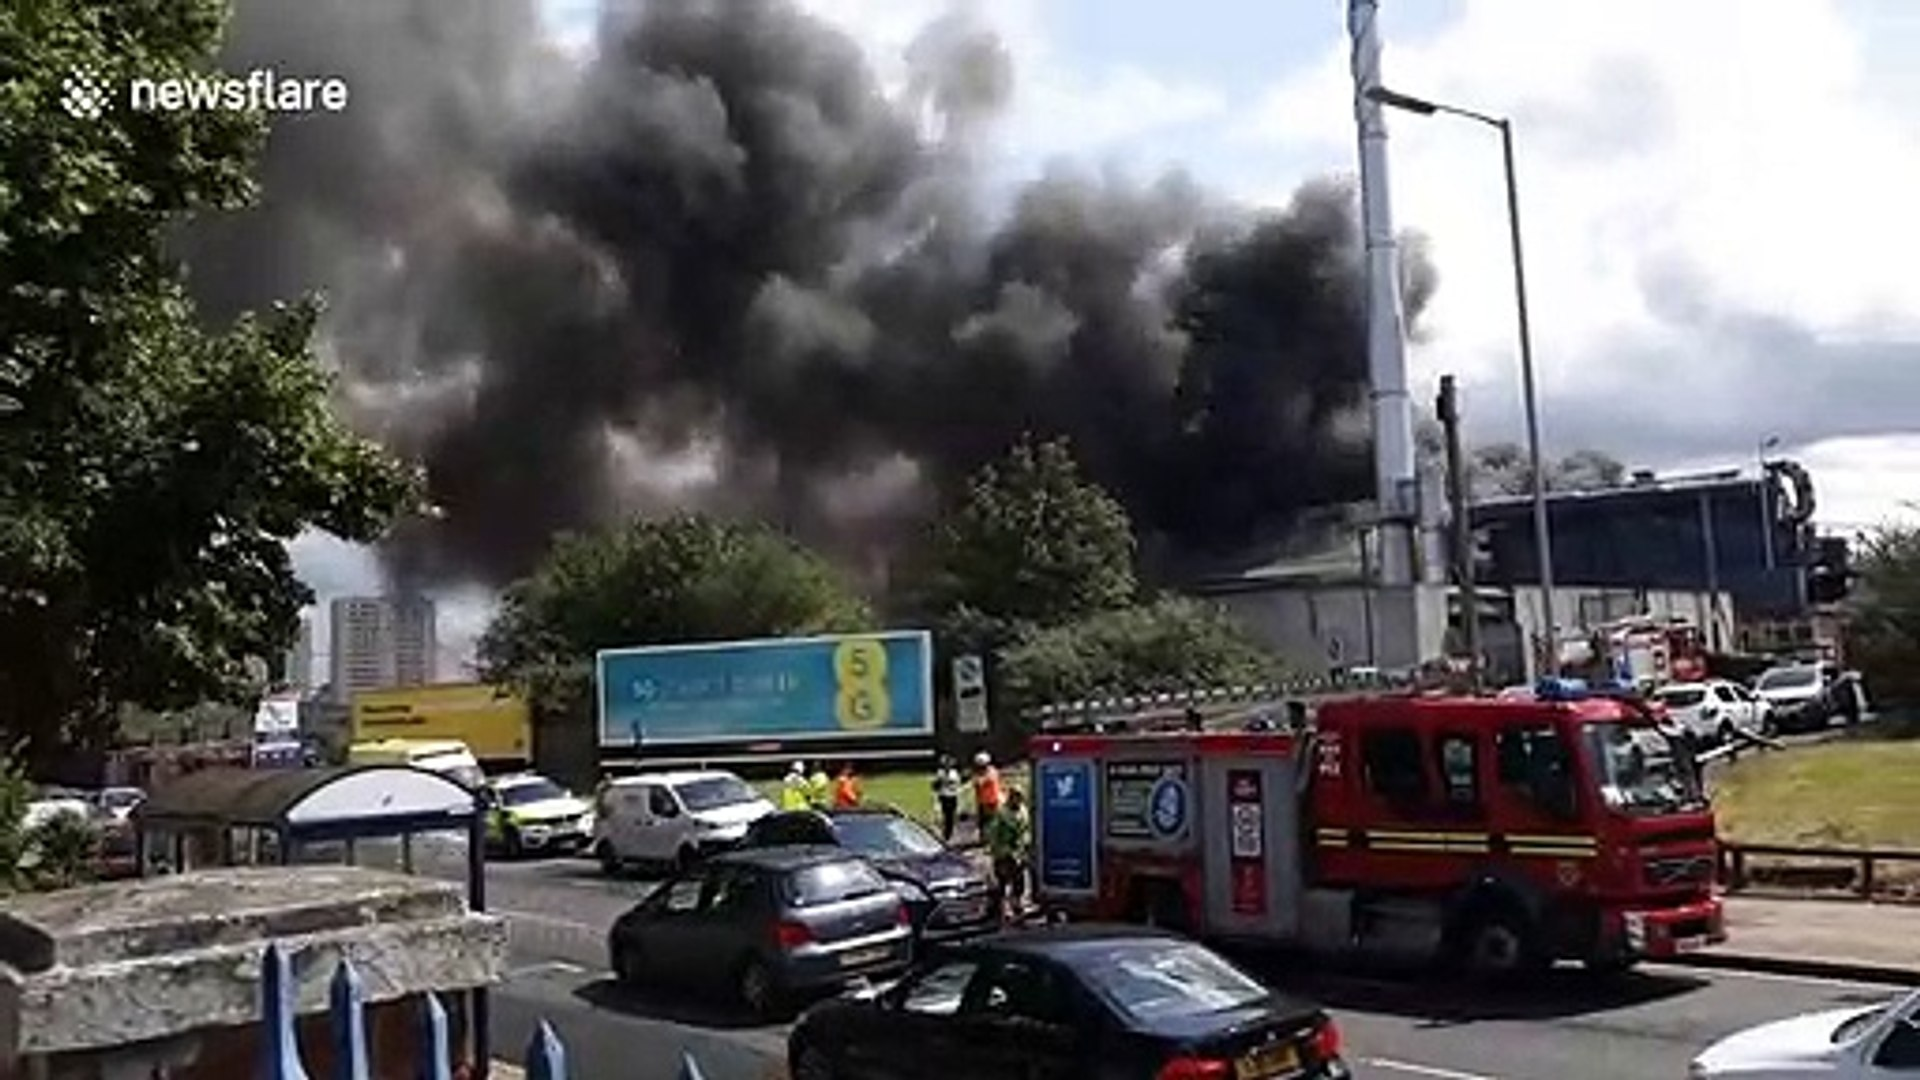 Fire opposite Dudley Road hospital sends black smoke across Birmingham, England